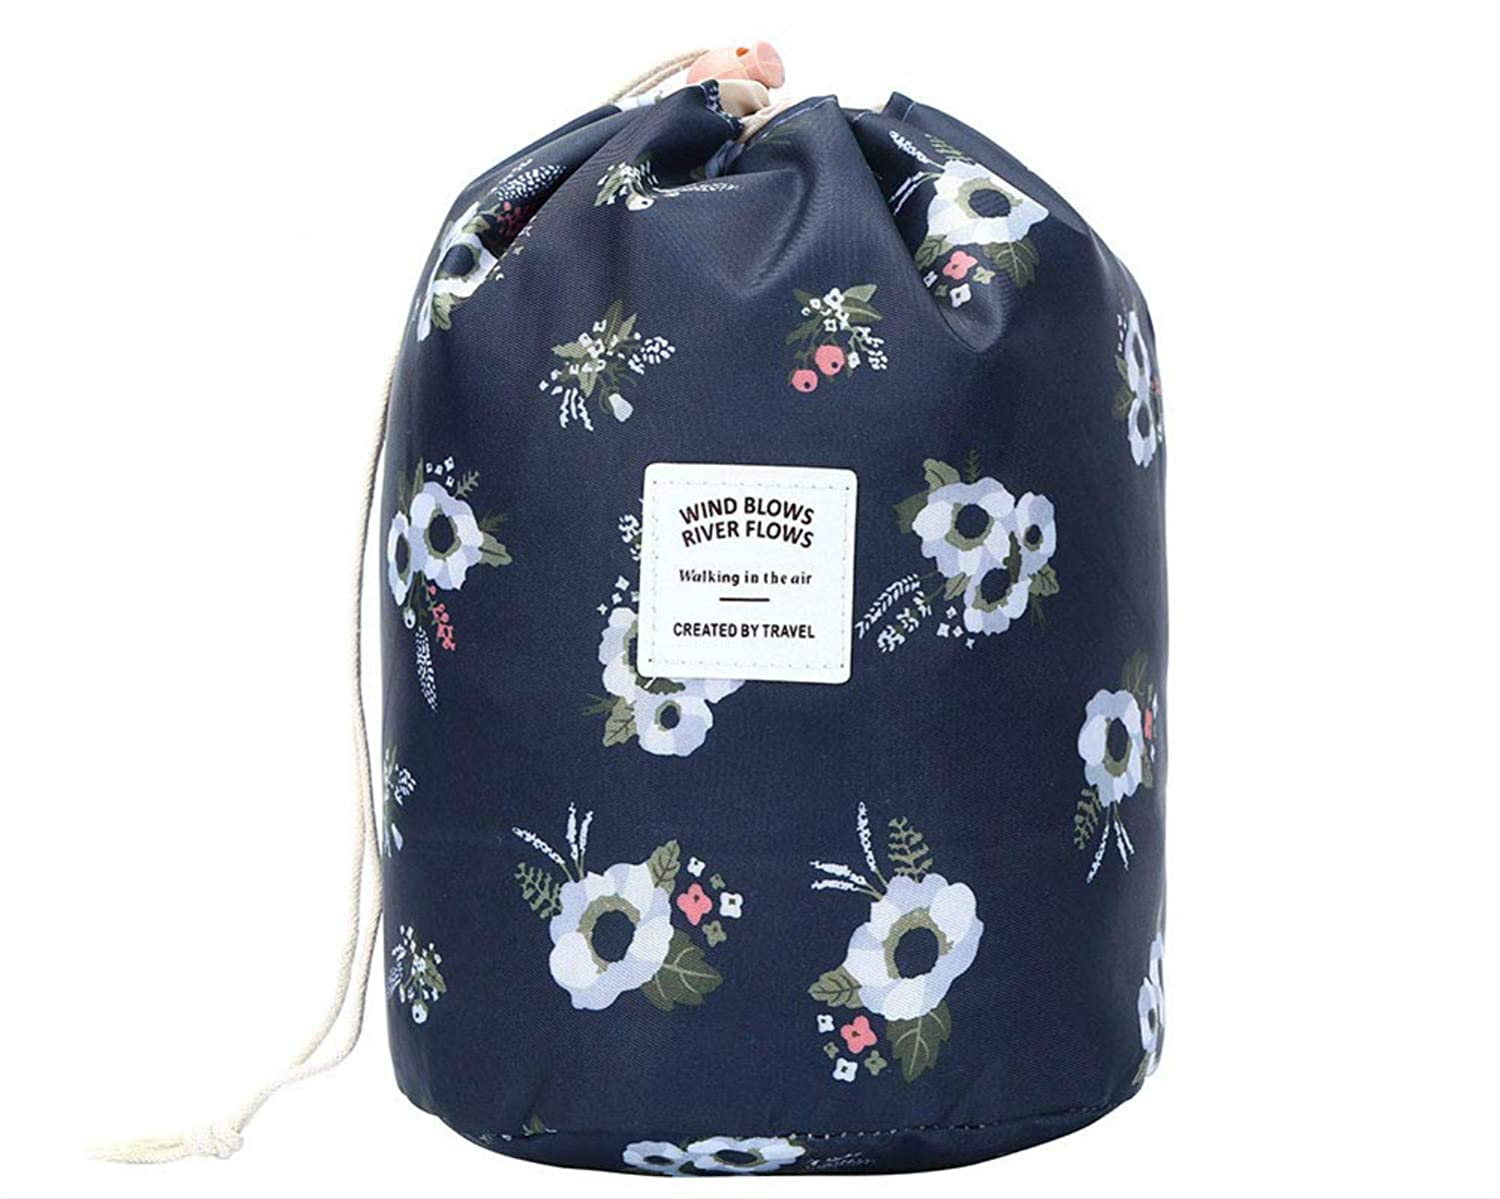 13271febd32d03 Amazon.com : Toiletry Bag, Women Cosmetic Bags Travel Multifunctional  Waterproof Drawstring Pouch Set of 3, Flamingo (Black Flower) : Beauty